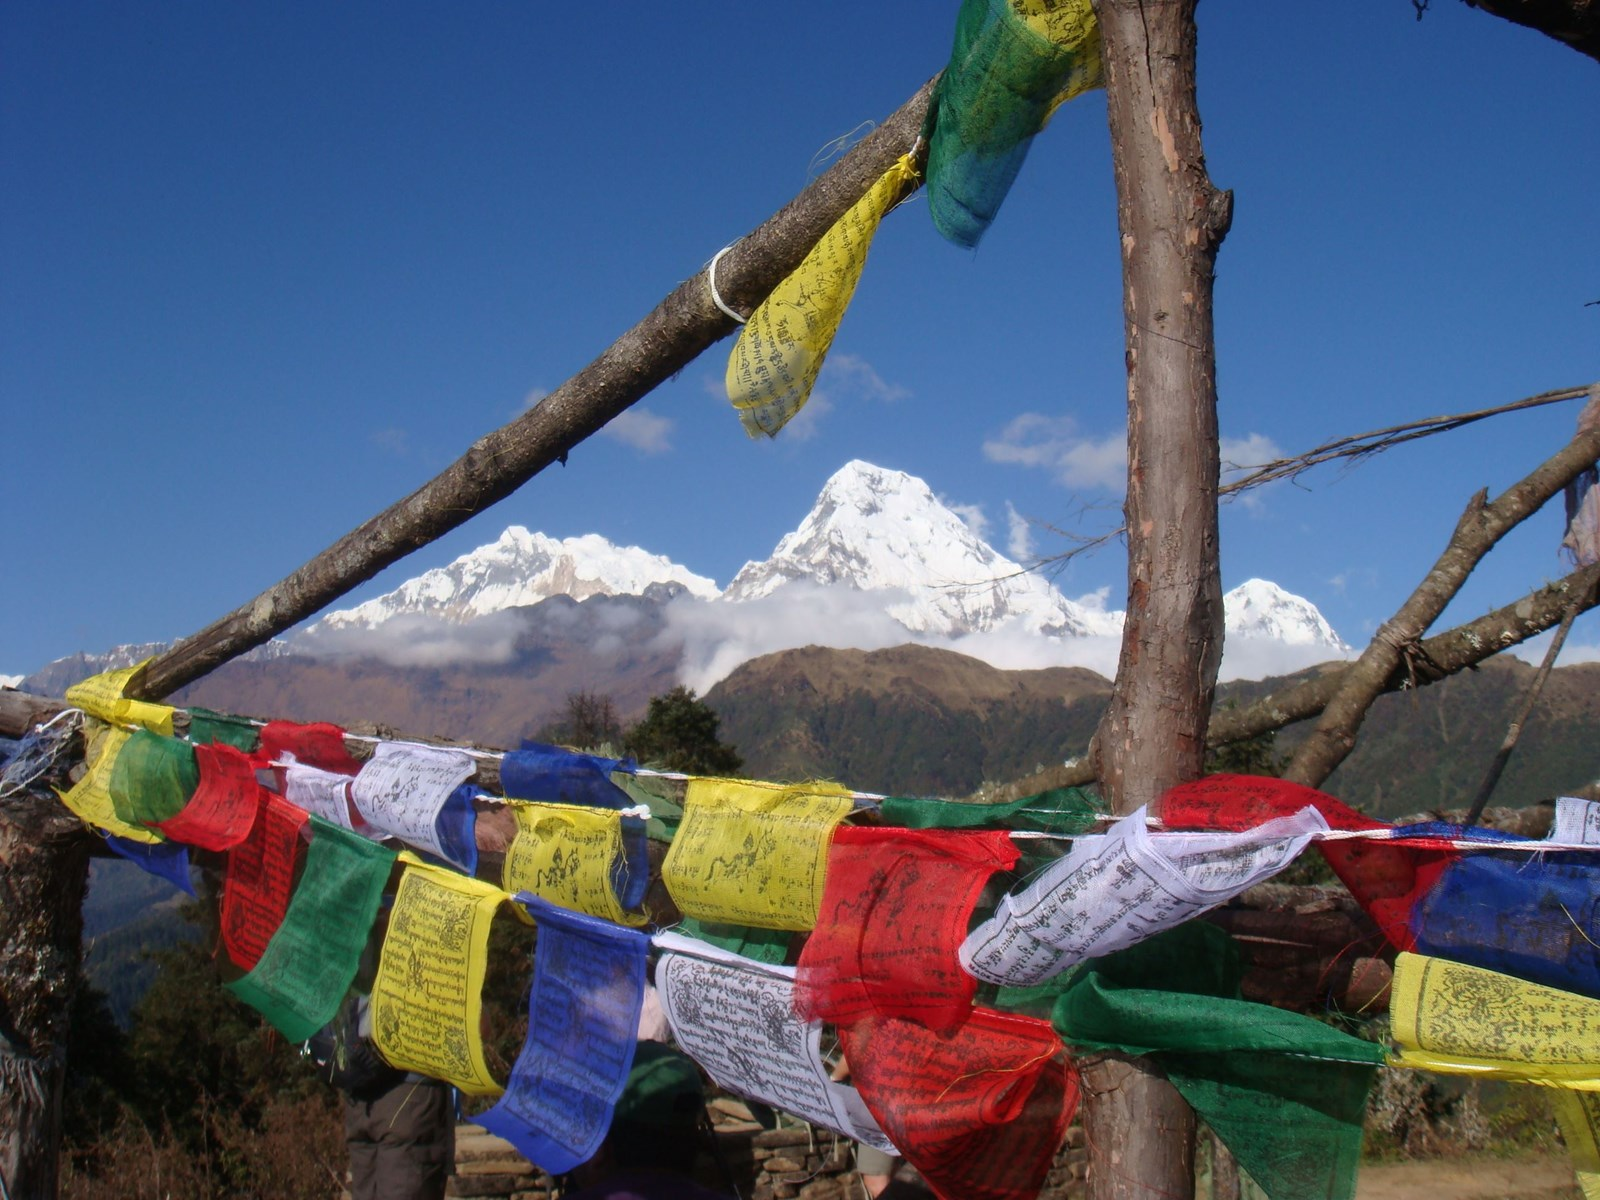 A - main image 2 - prayer flags and view - Nepal.JPG